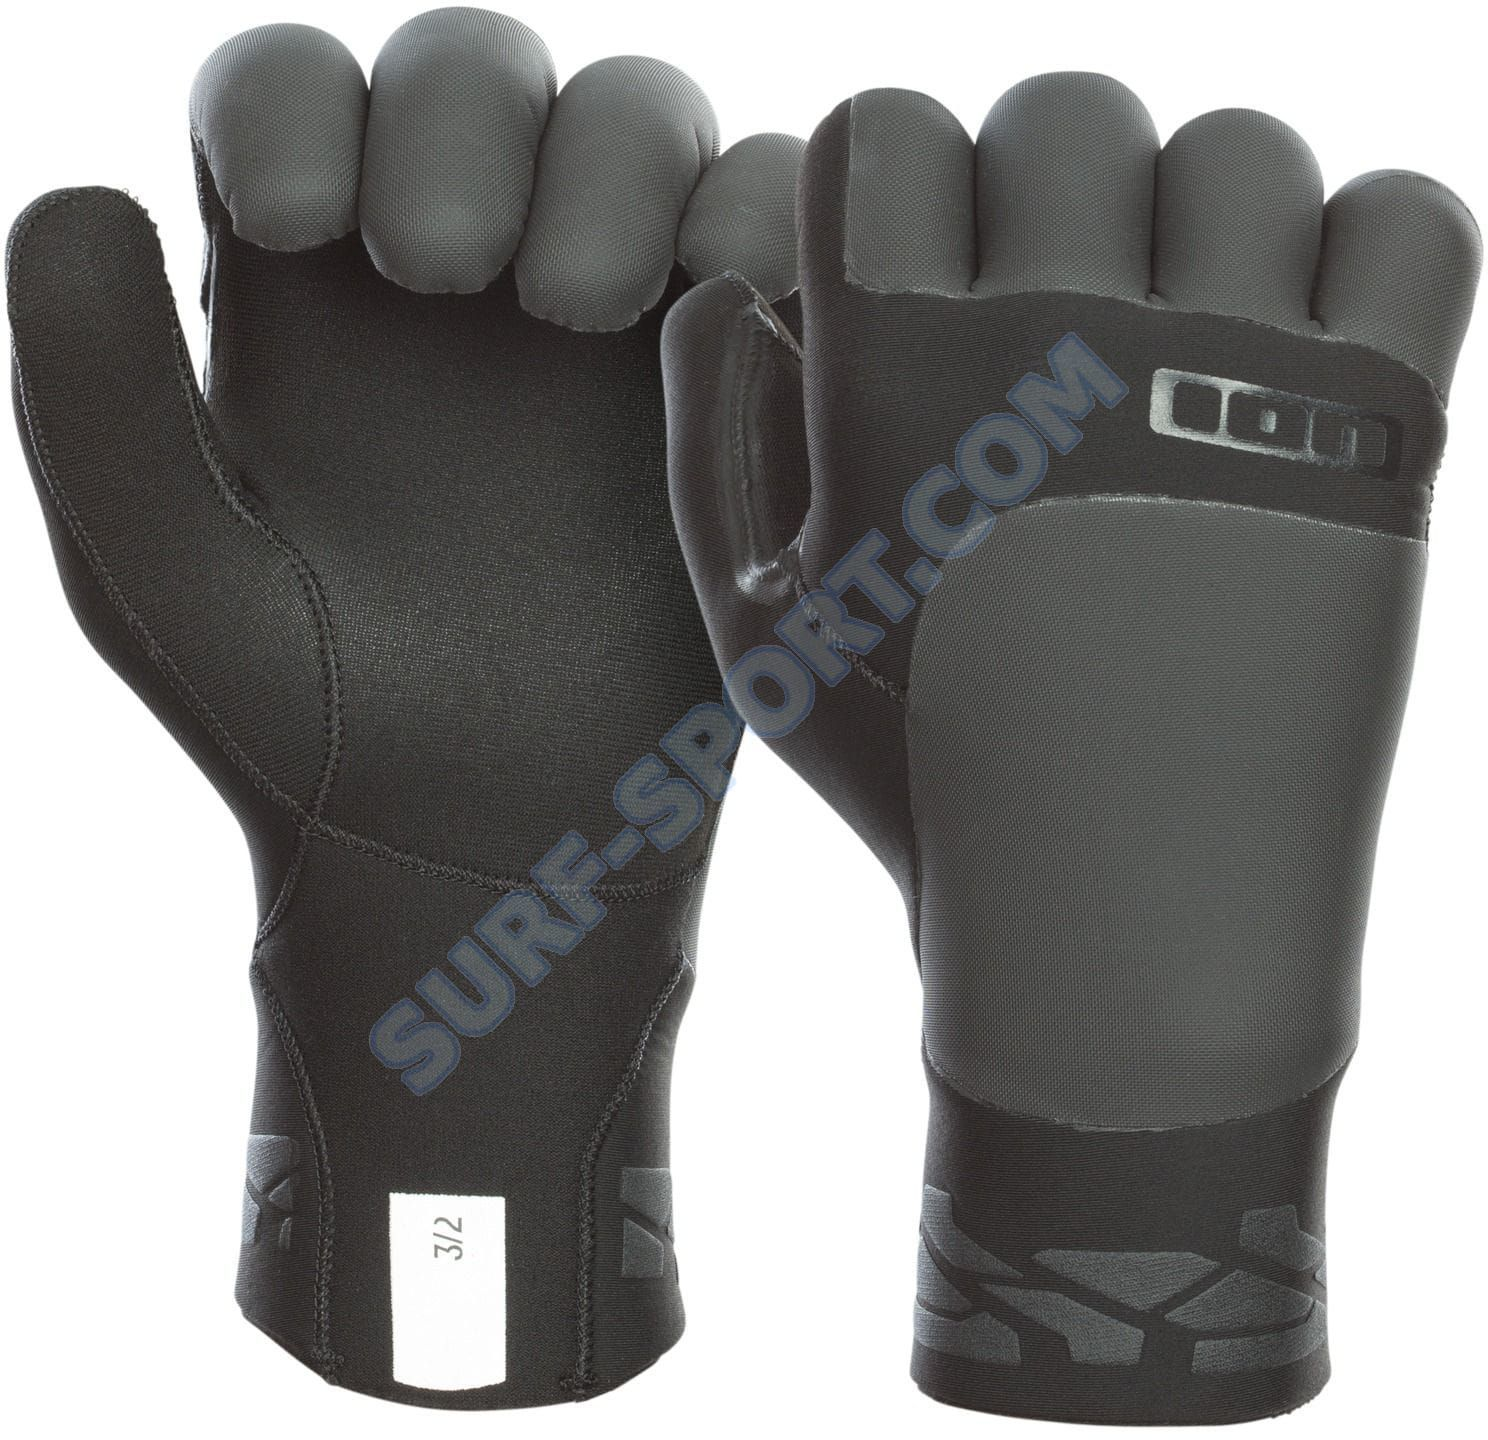 Rękawice Neoprenowe Ion Claw Gloves 3/2 -2020 Black